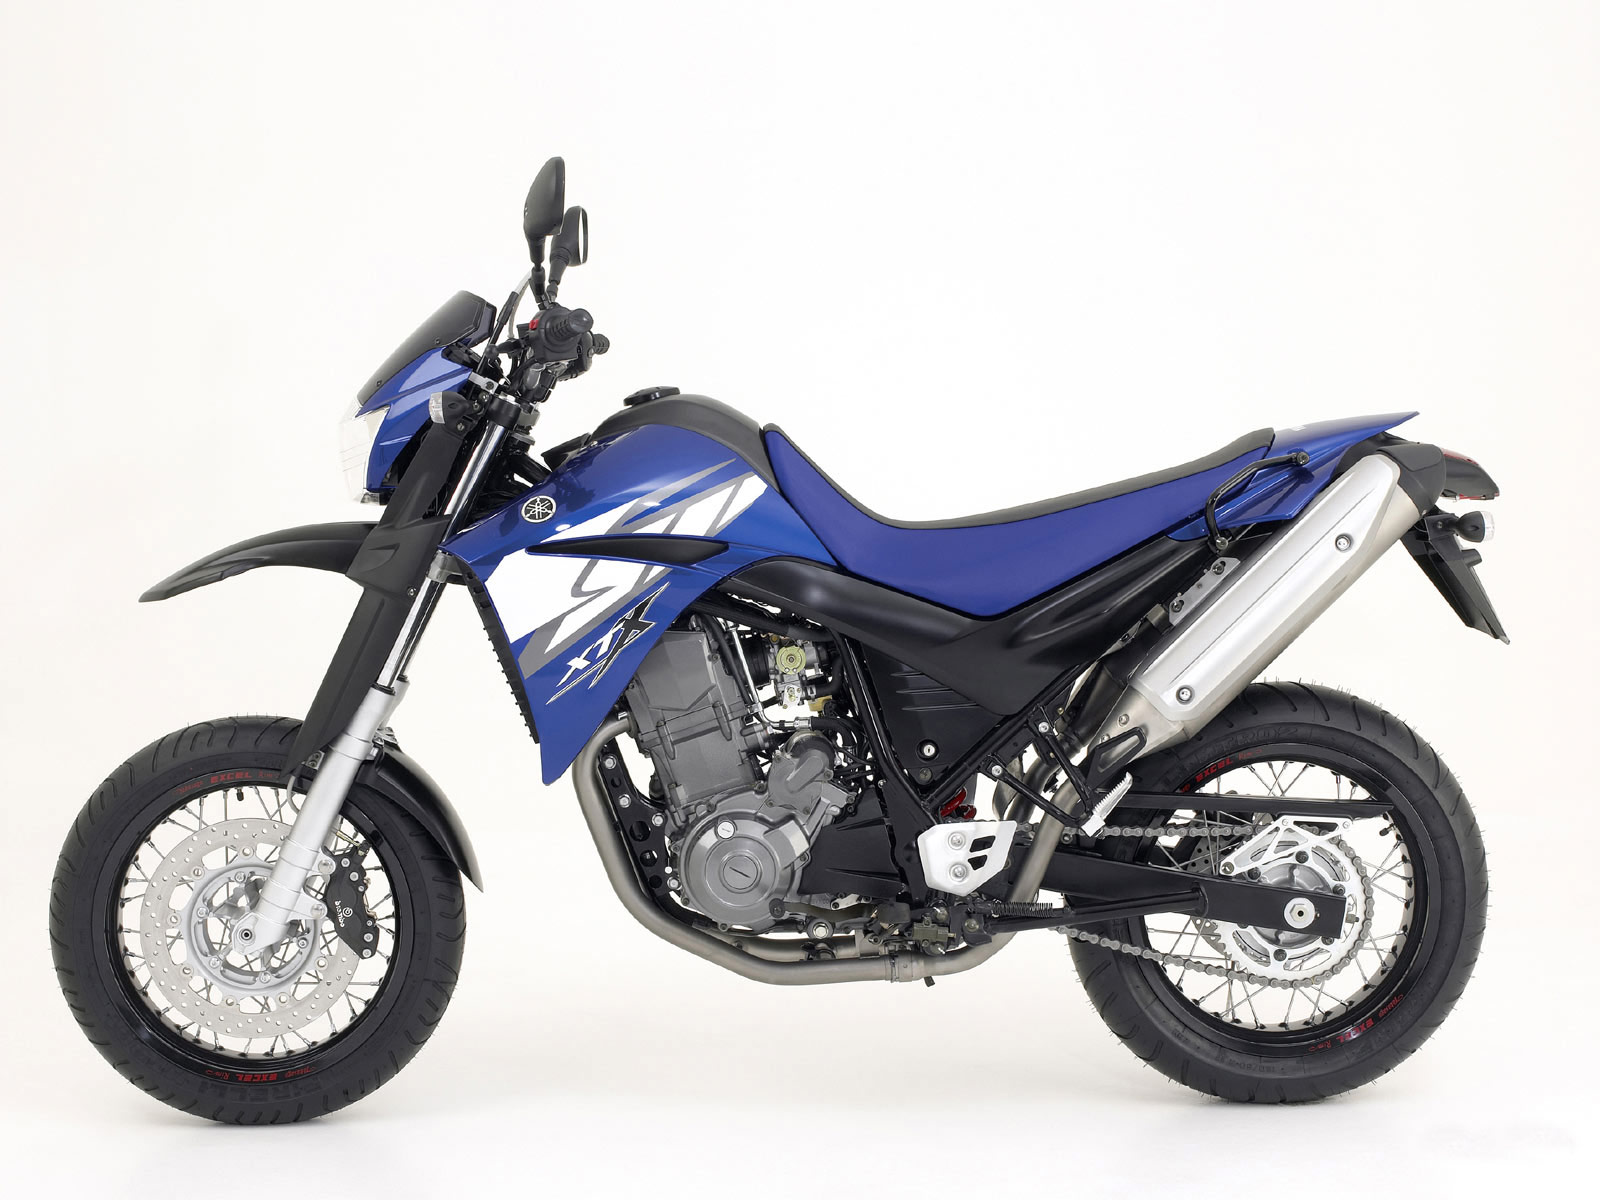 2004 YAMAHA XT660X Supermotard pictures  specifications   Super